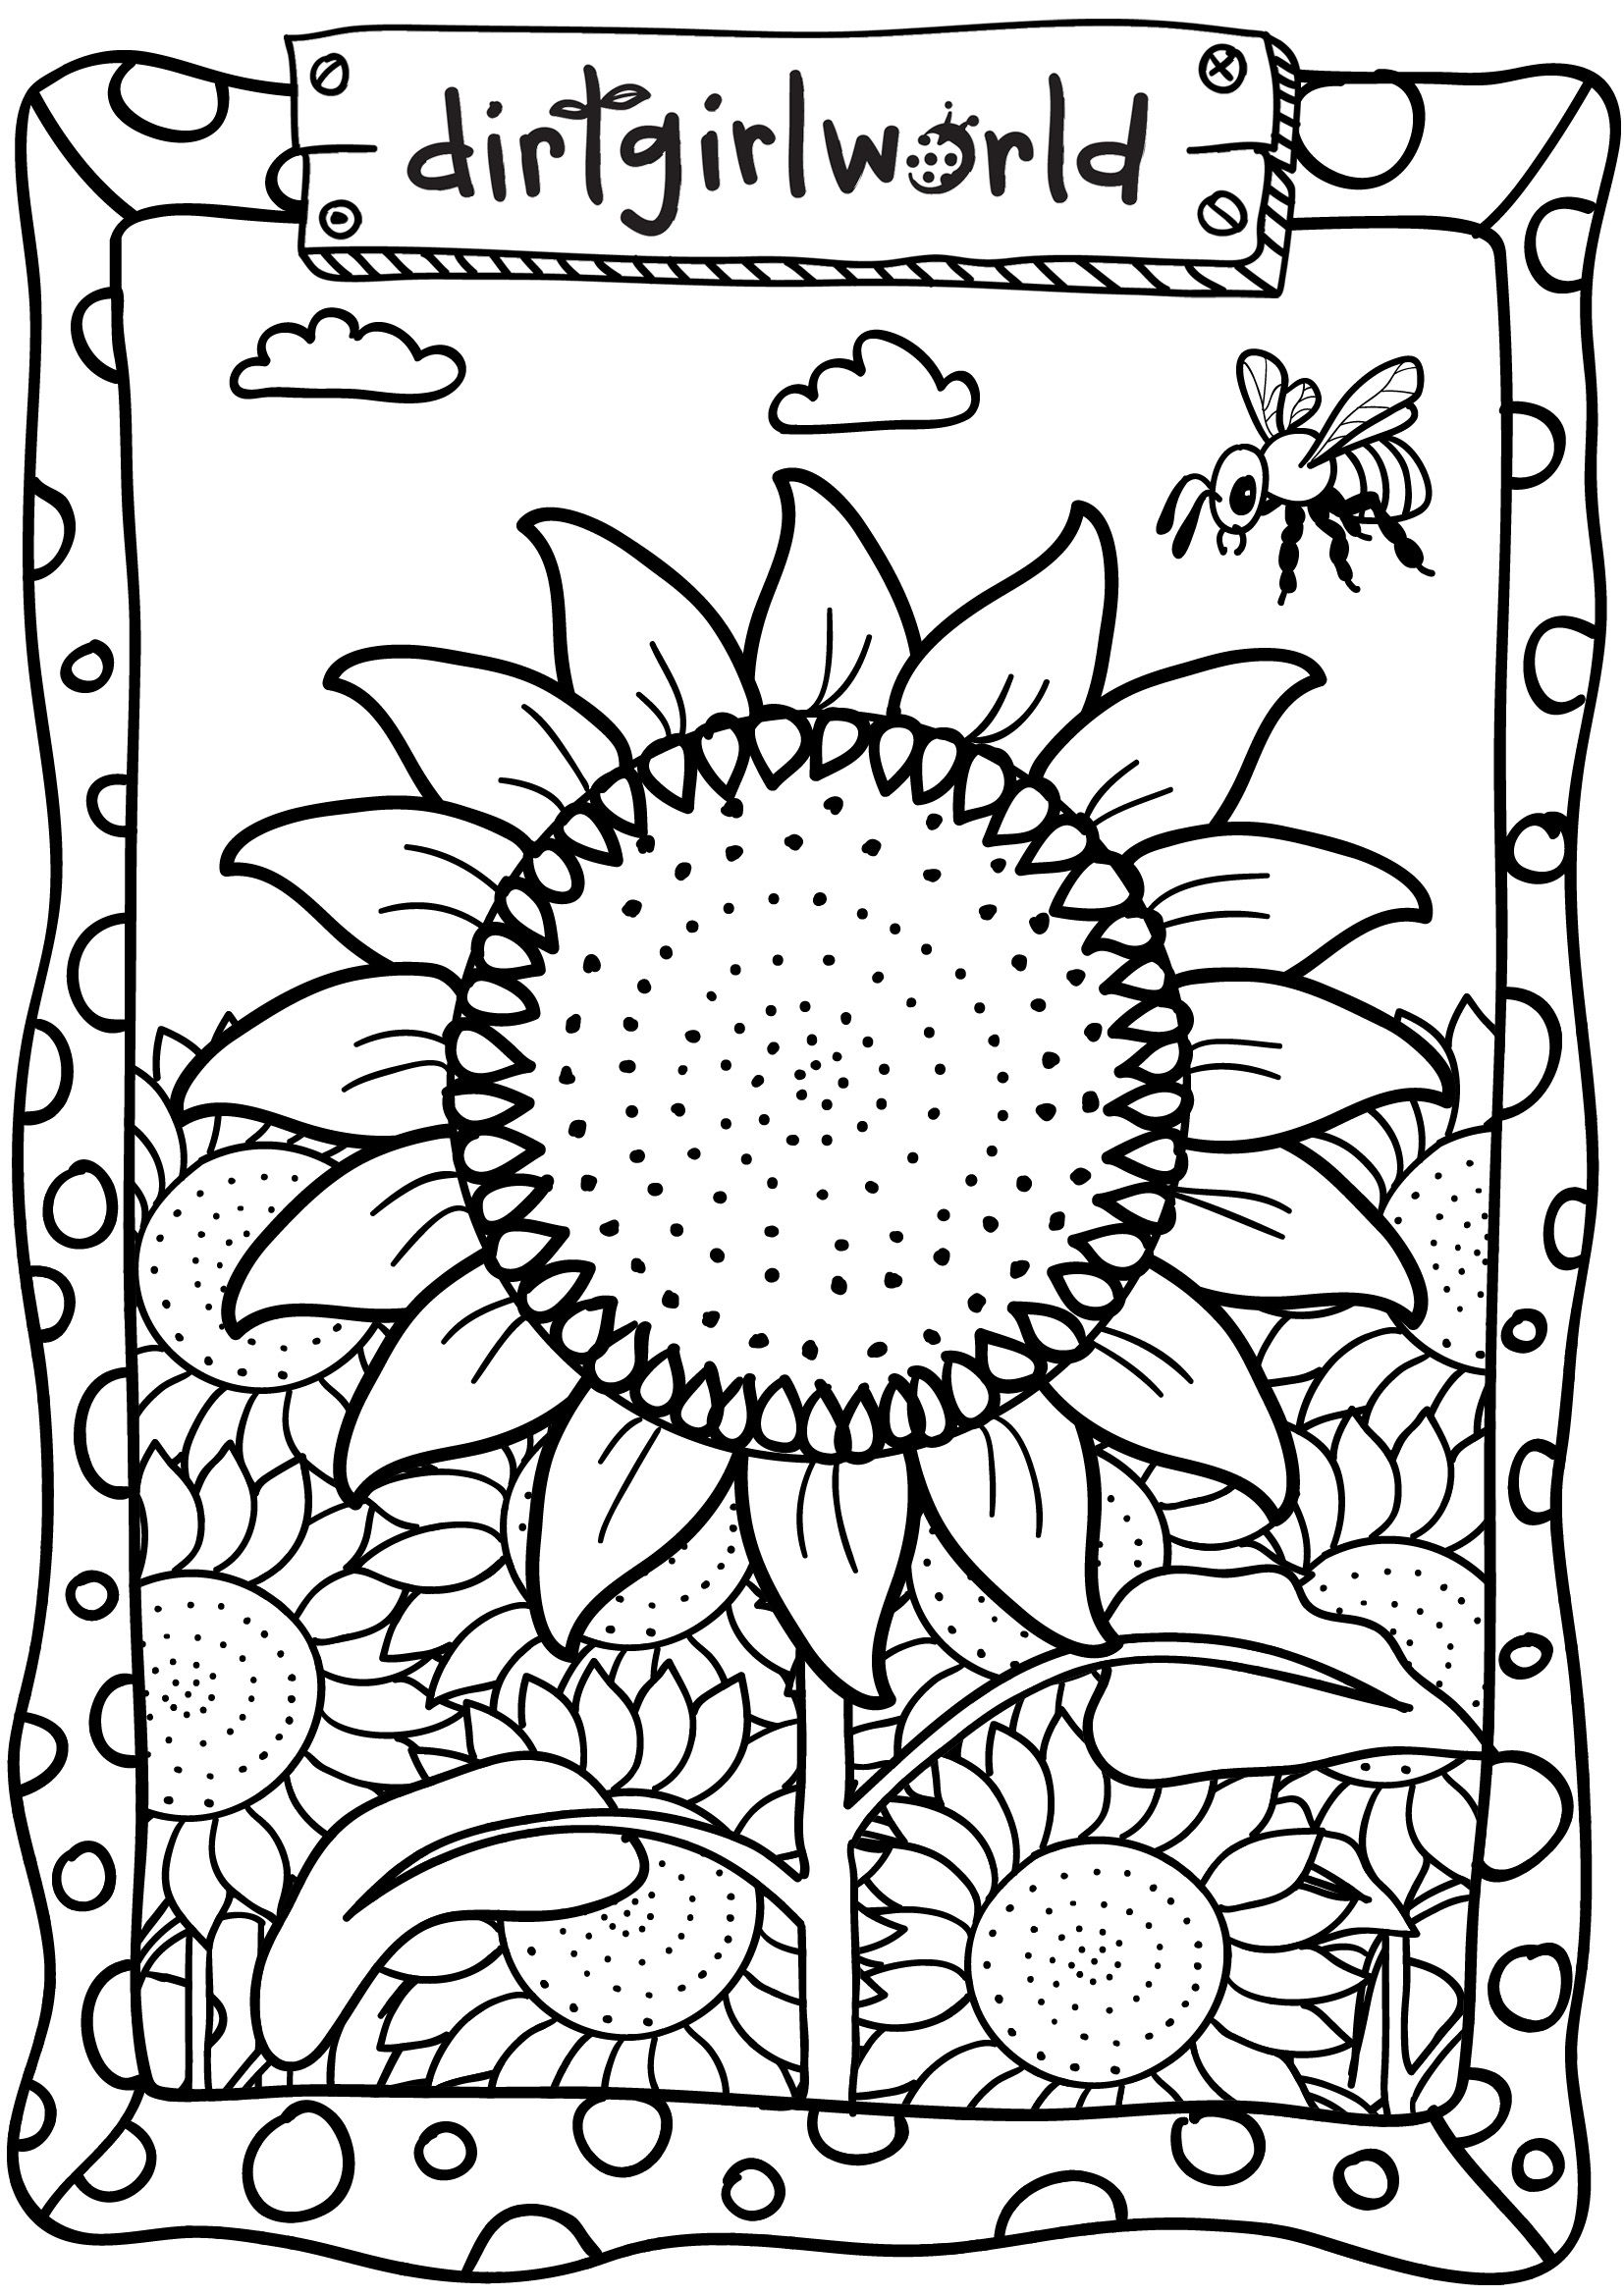 Dirt Girl World Sunflower Colouring Page